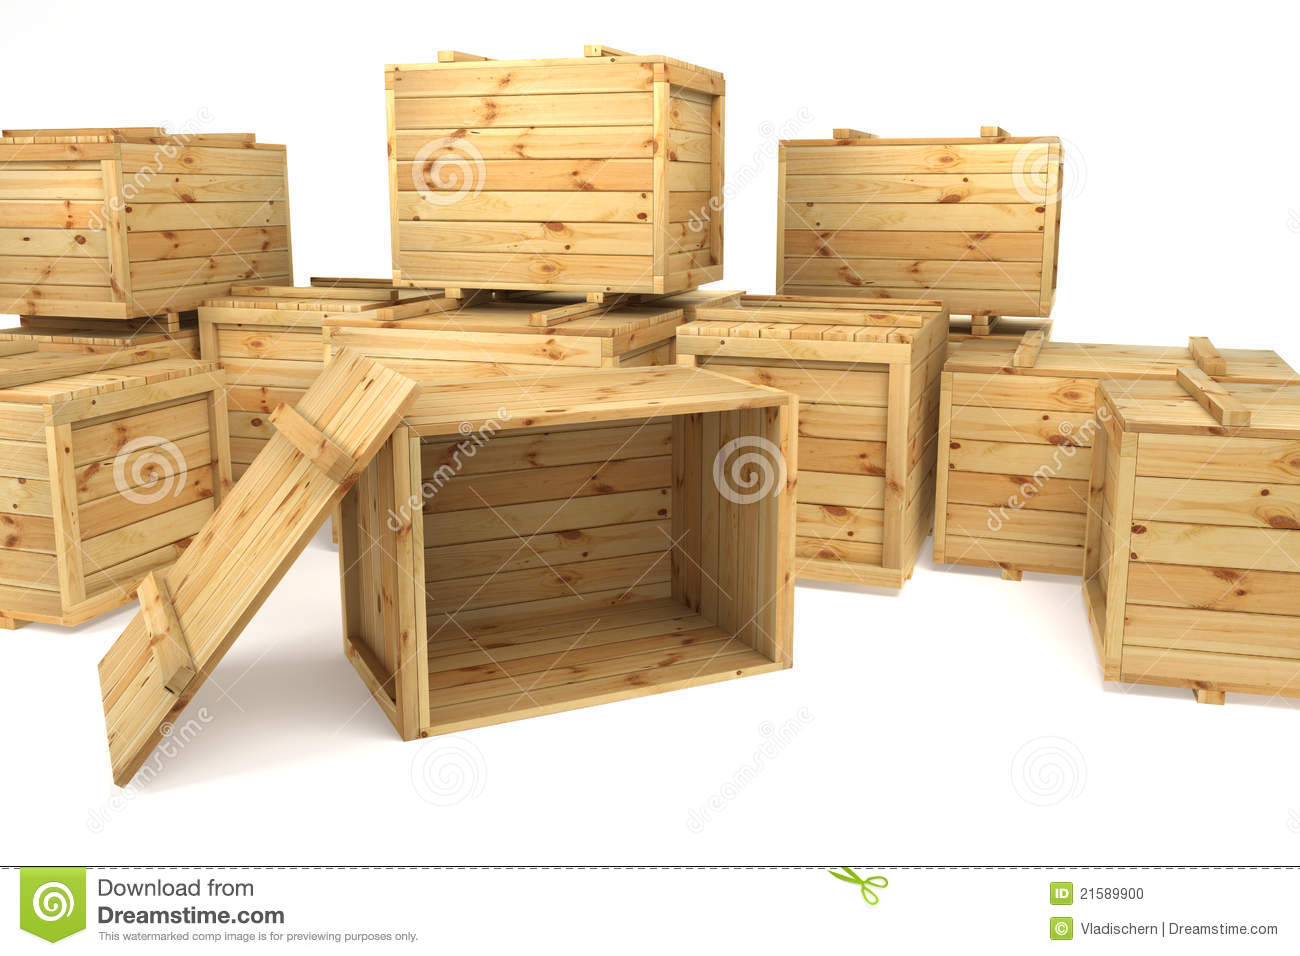 Crates for Wooden chicken crate plans